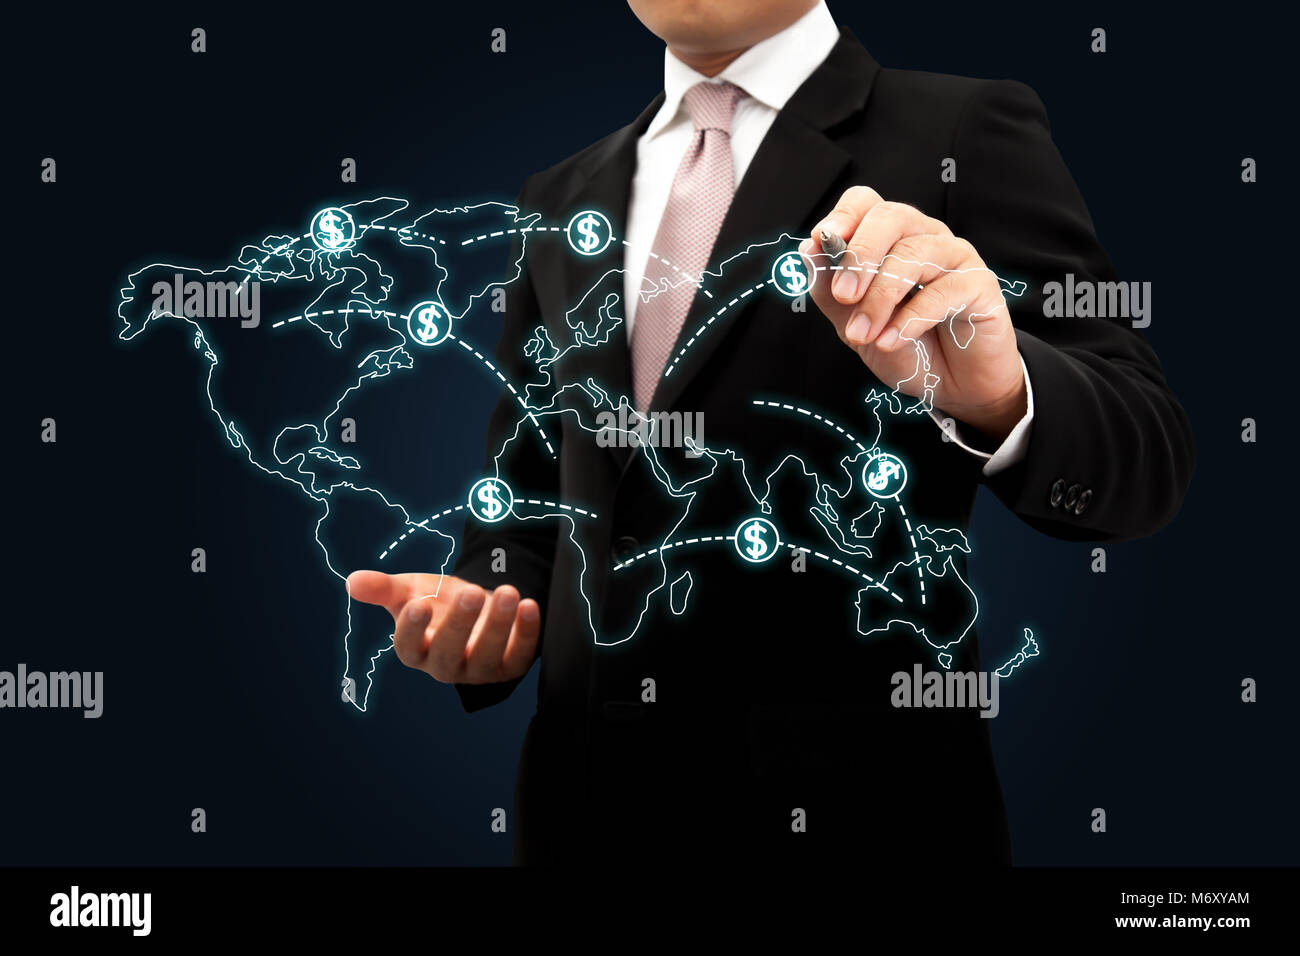 Business growth throughout the world. - Stock Image